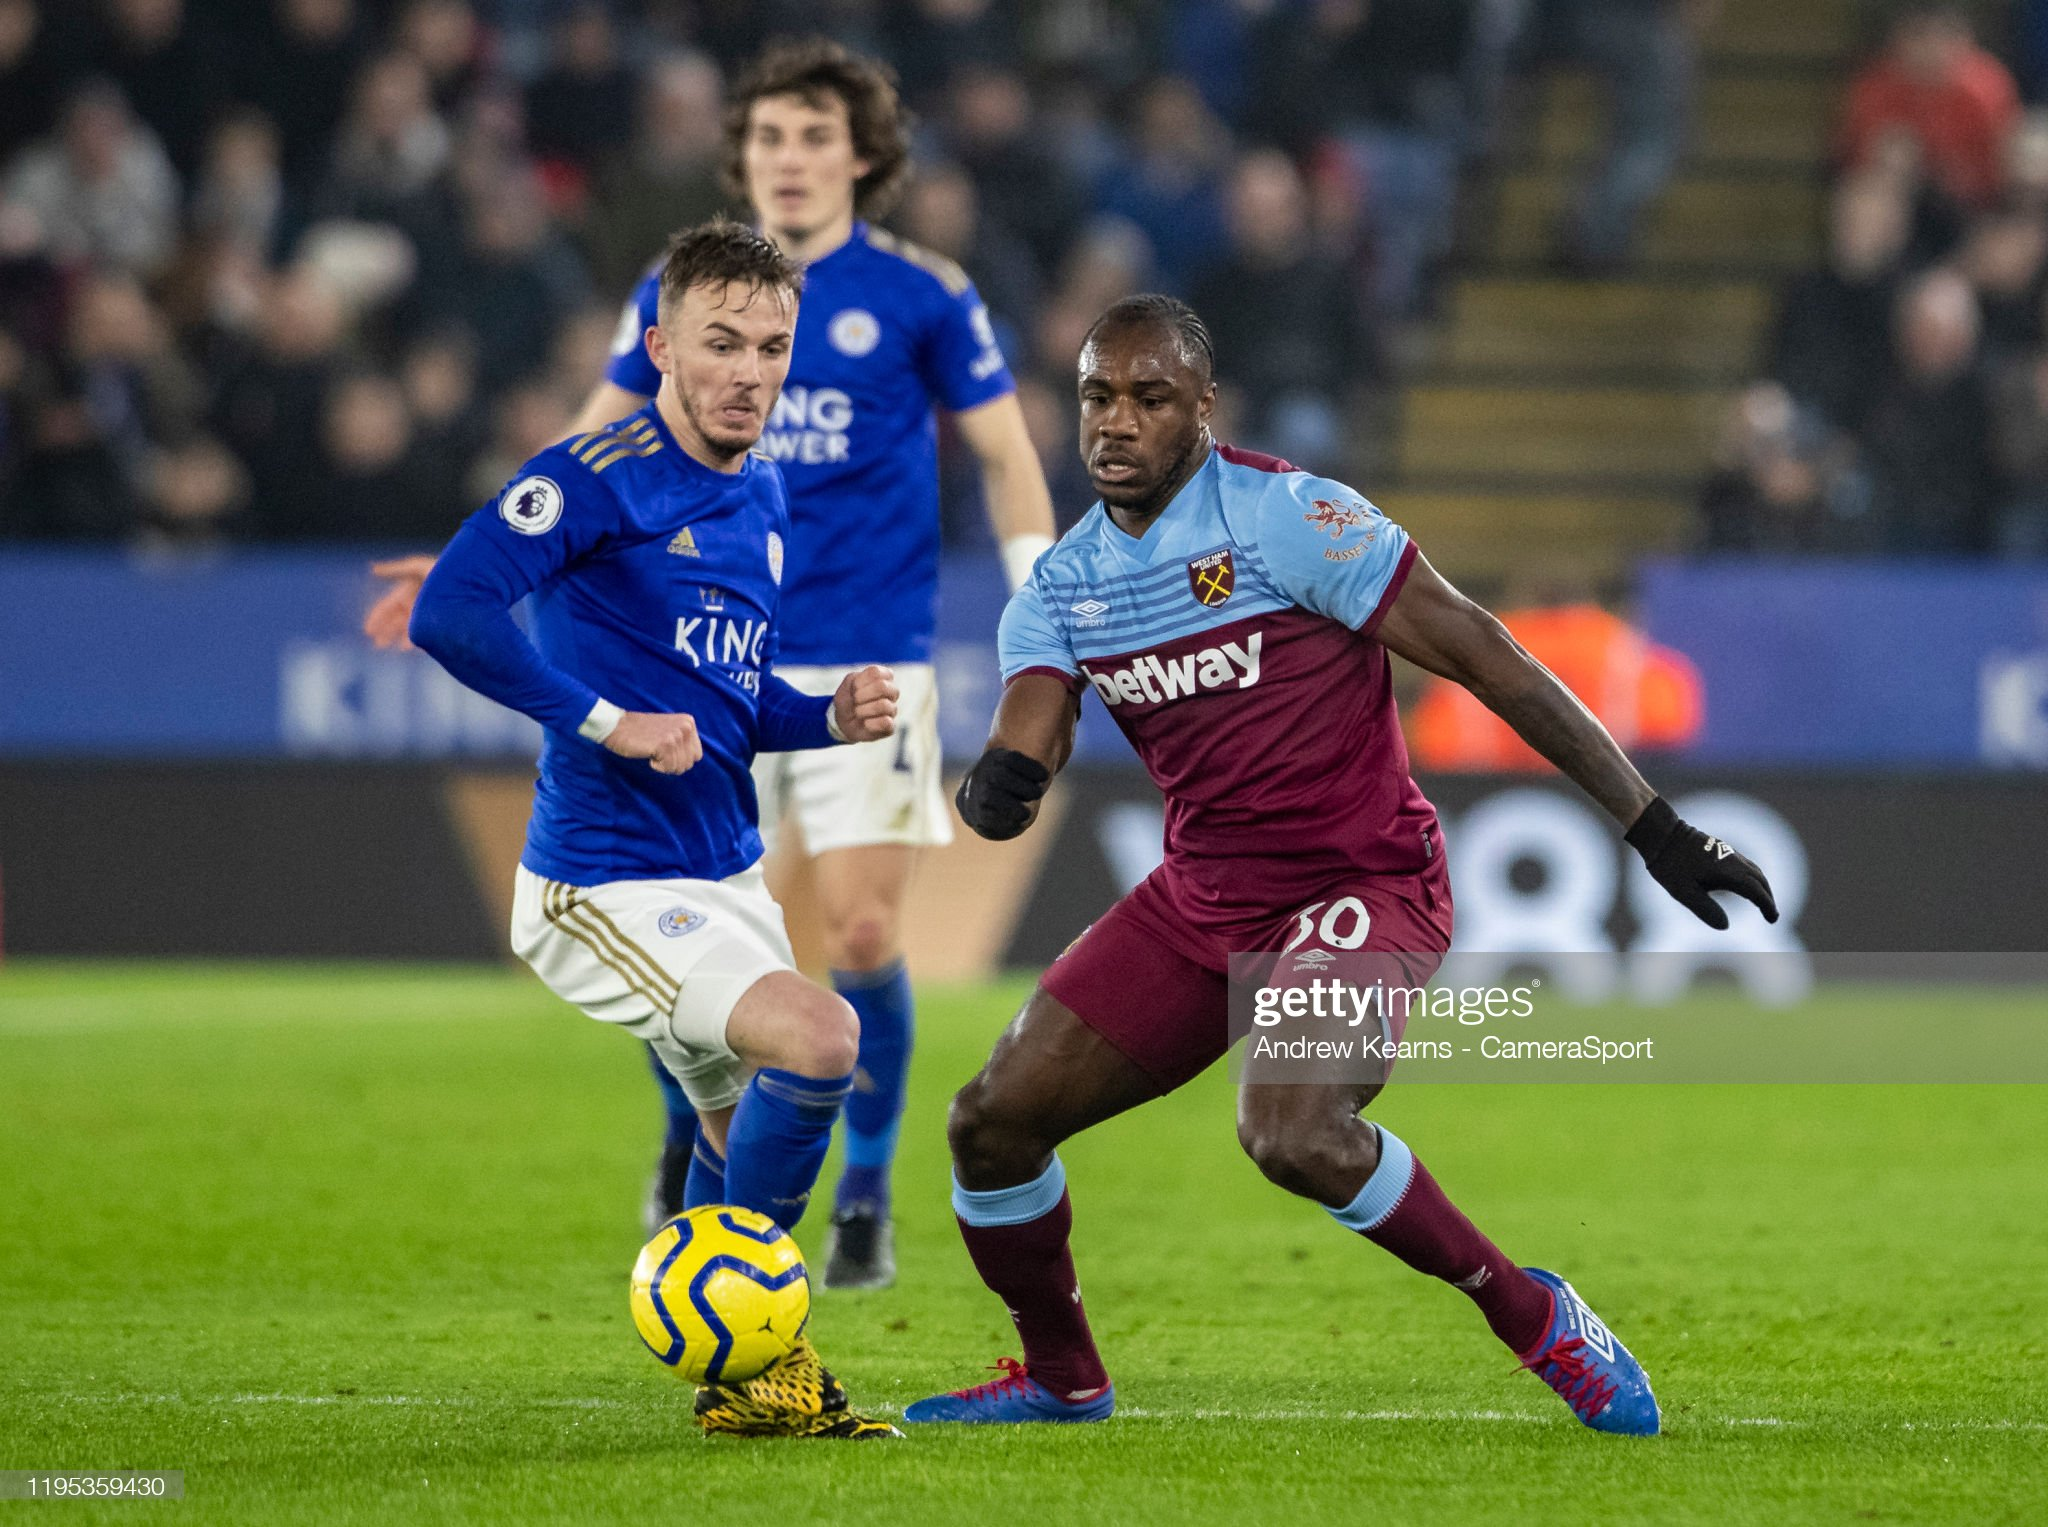 Leicester vs West Ham preview, prediction and odds